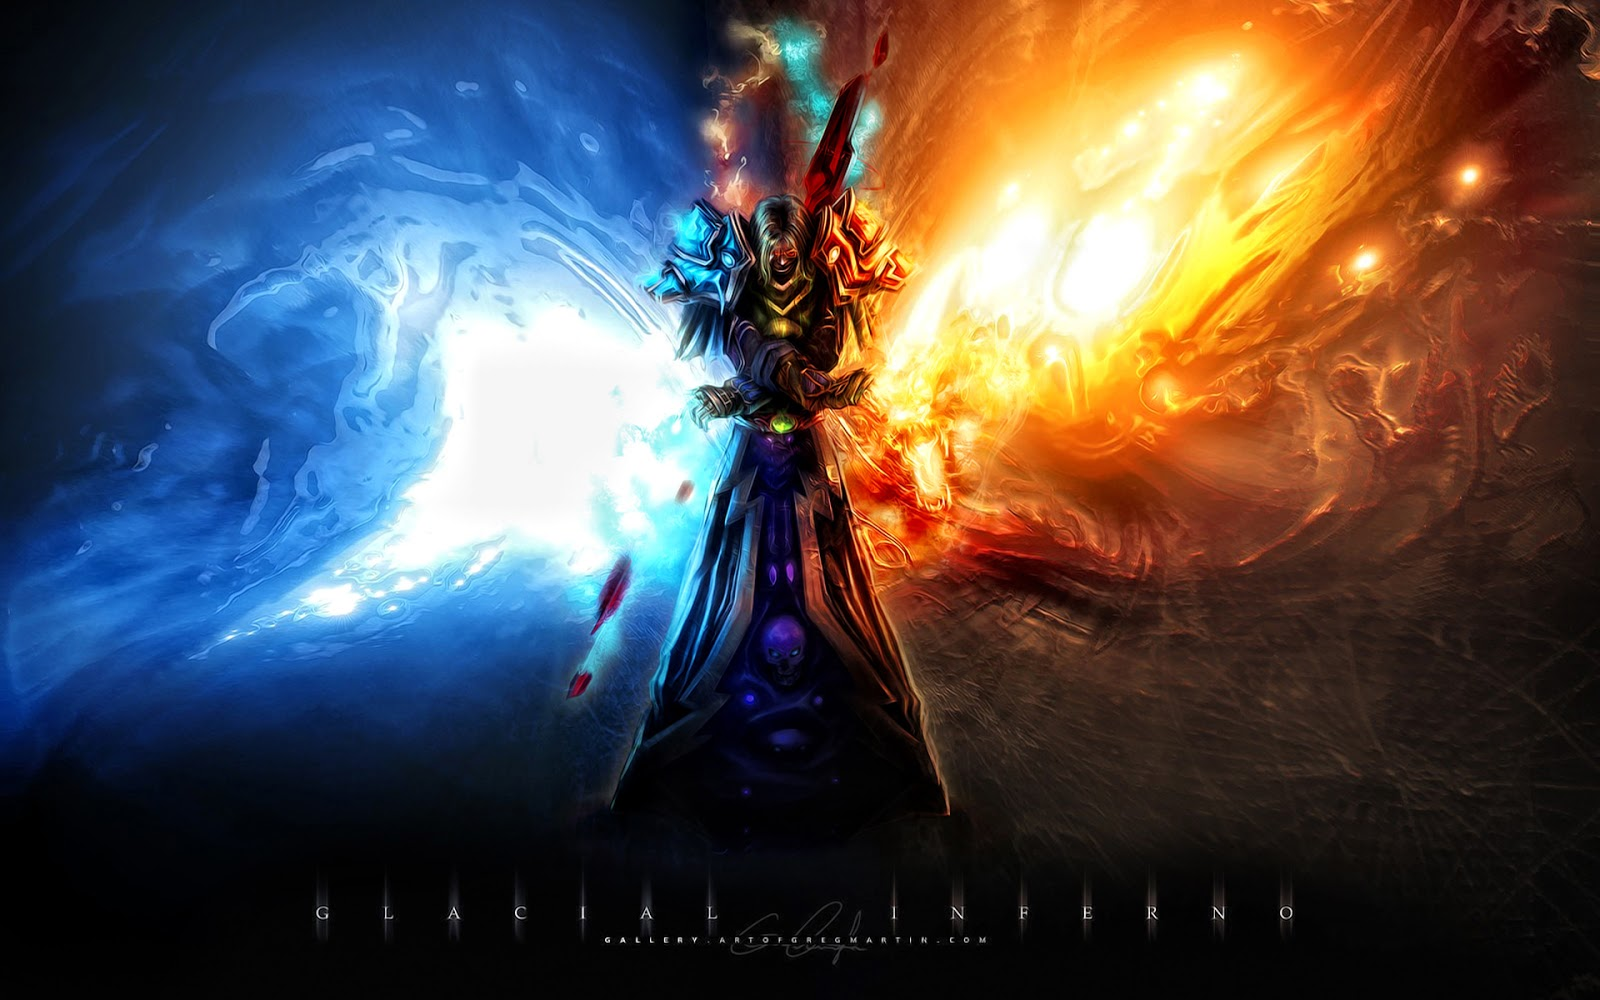 HD Wallpapers 87: Cool fire Wallpapers